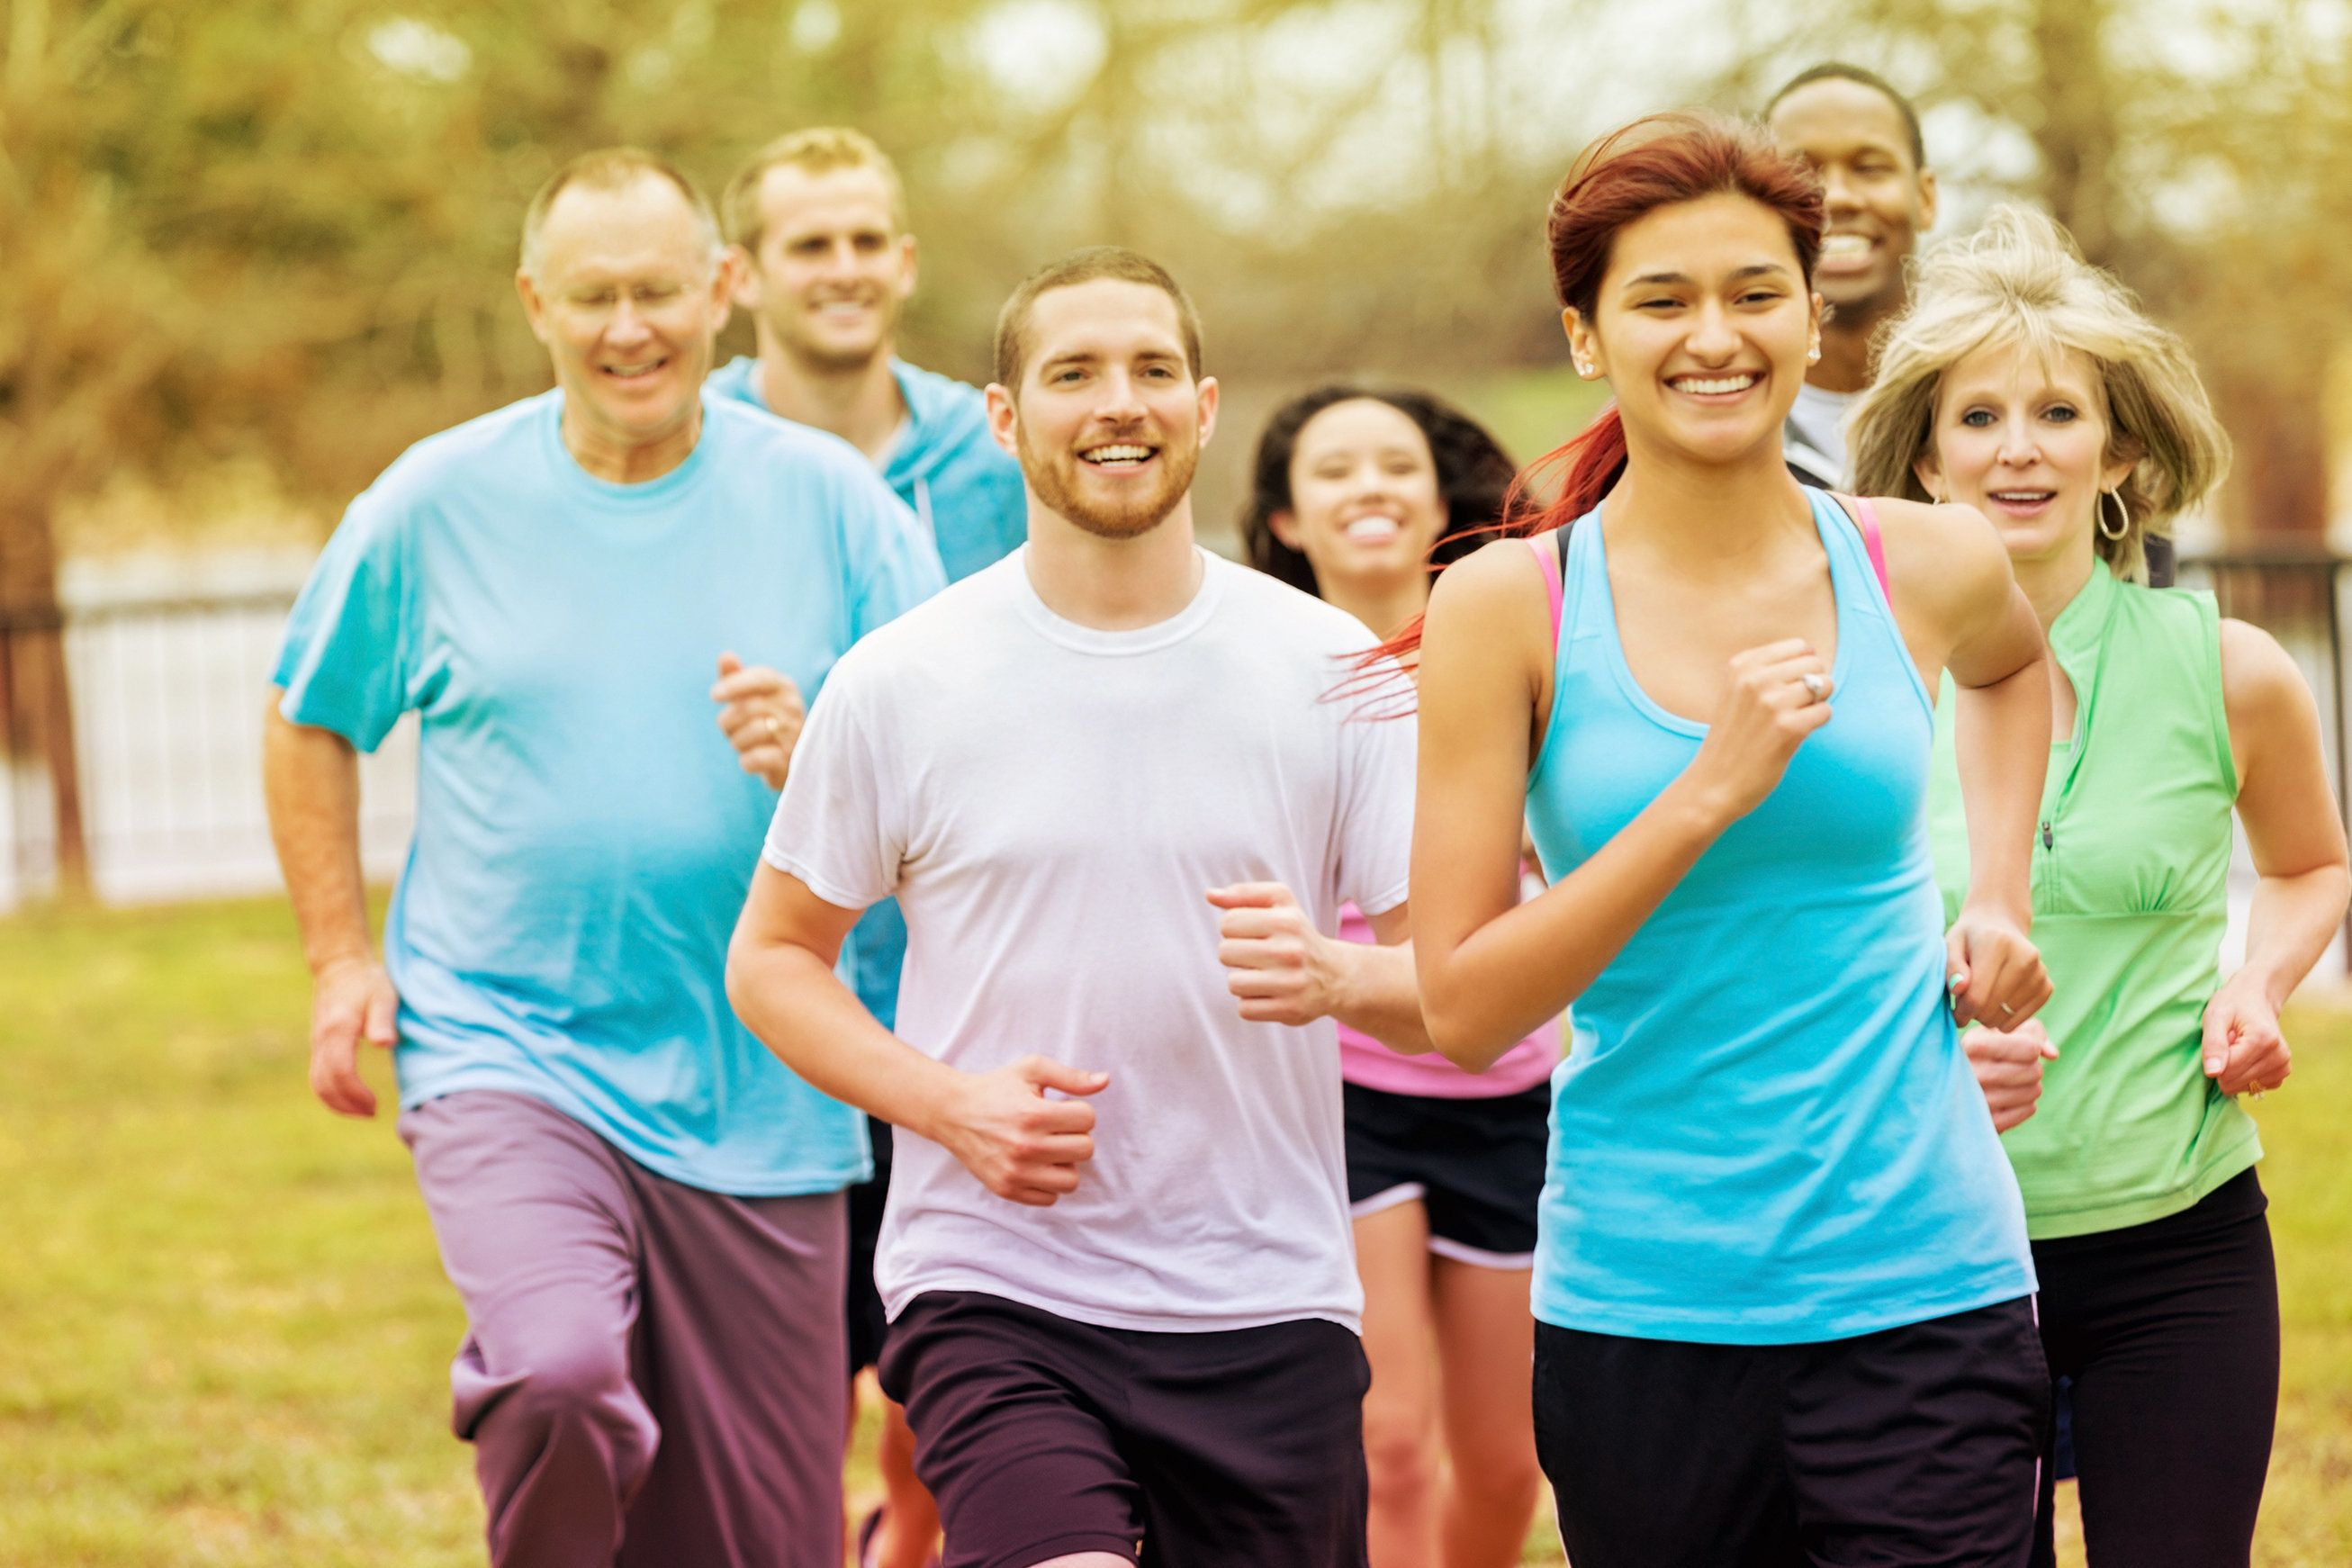 Why Joining A Running Club Is Good For Your Social Life